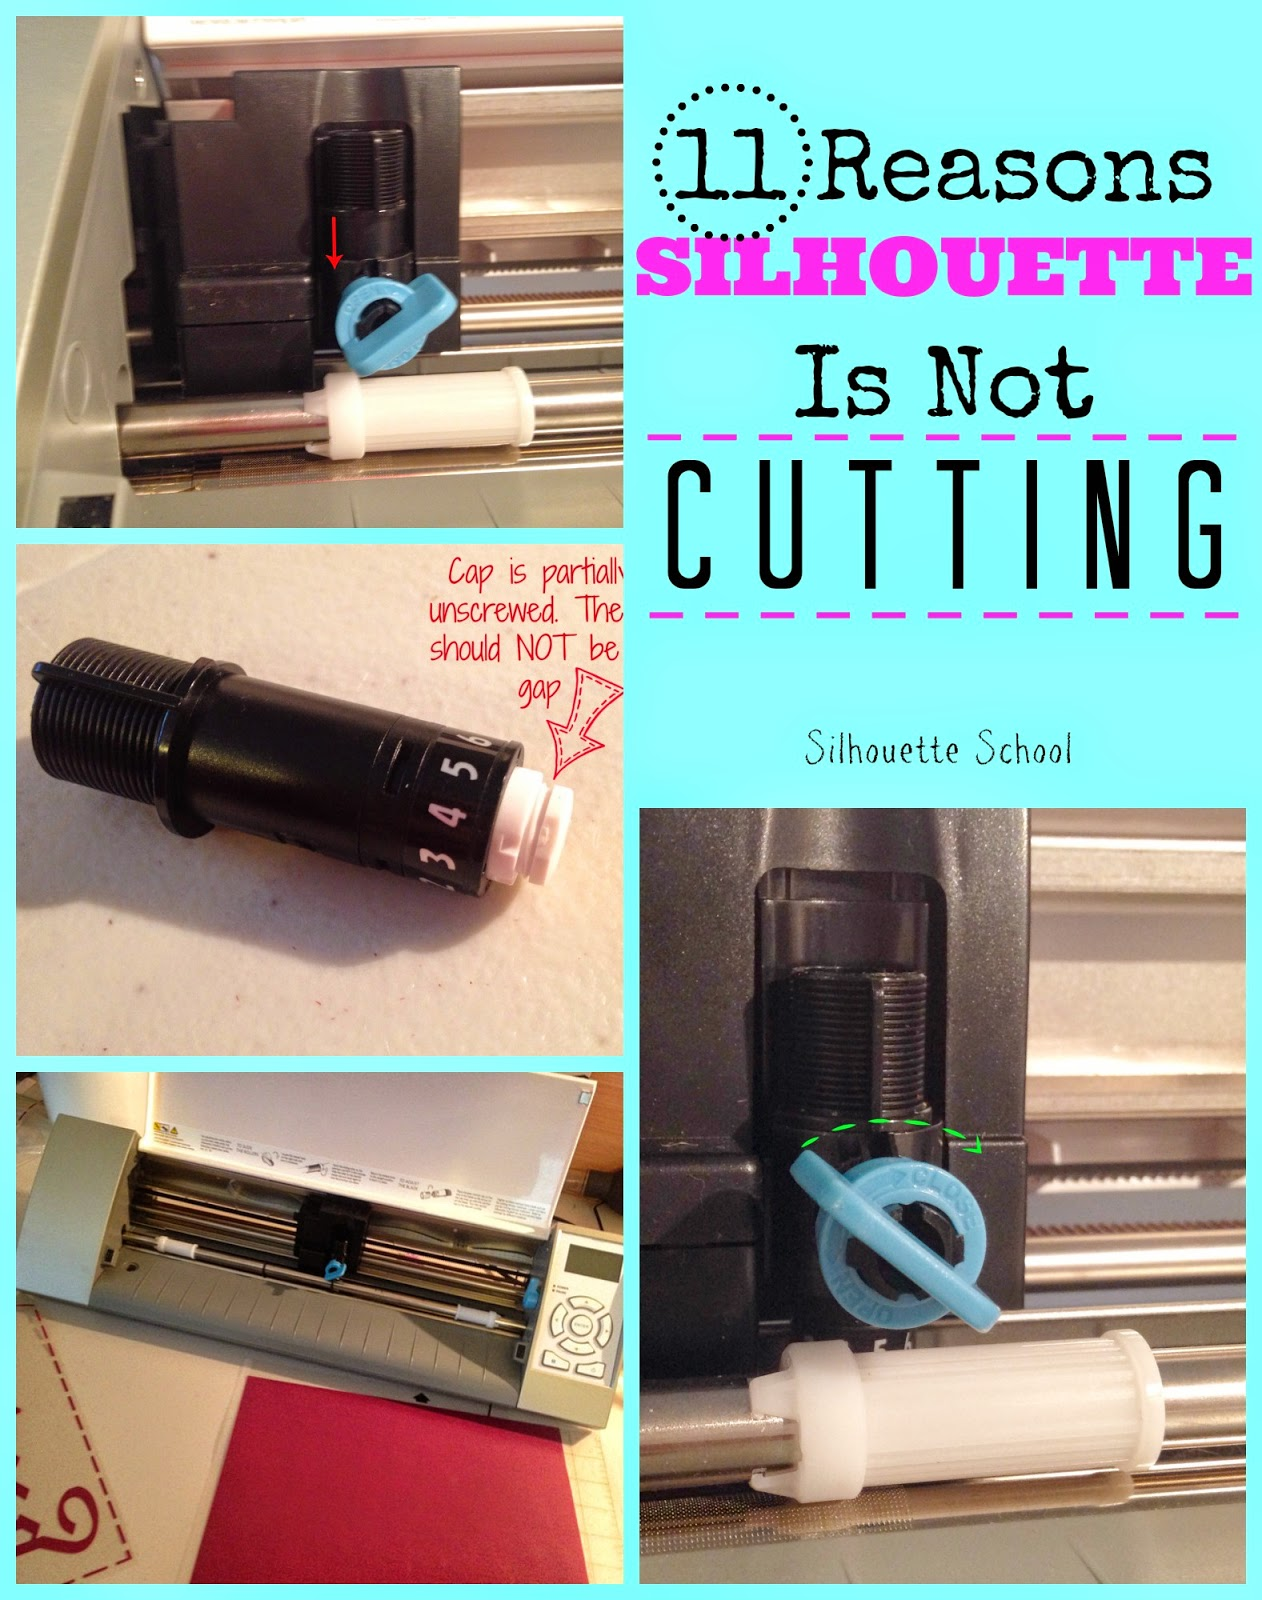 Silhouette, Silhouette Cameo, troubleshooting, not cutting, Silhouette Studio, silhouette not cutting